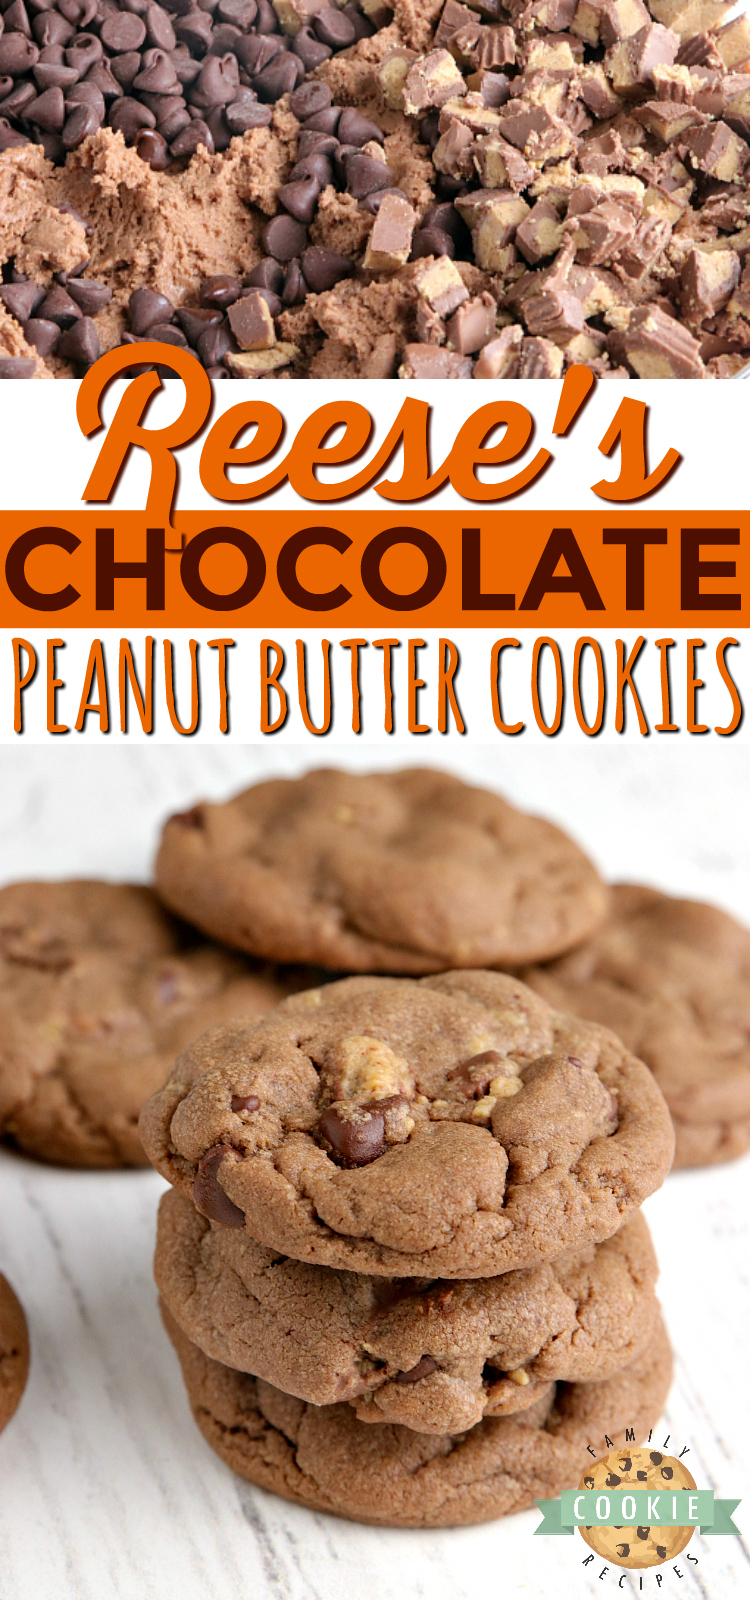 Reese's Chocolate Peanut Butter Cookies are full of chocolate, peanut butter and Reese's Peanut Butter Cups. Peanut butter cookie recipe that is soft, chewy and absolutely perfect! via @familycookierecipes